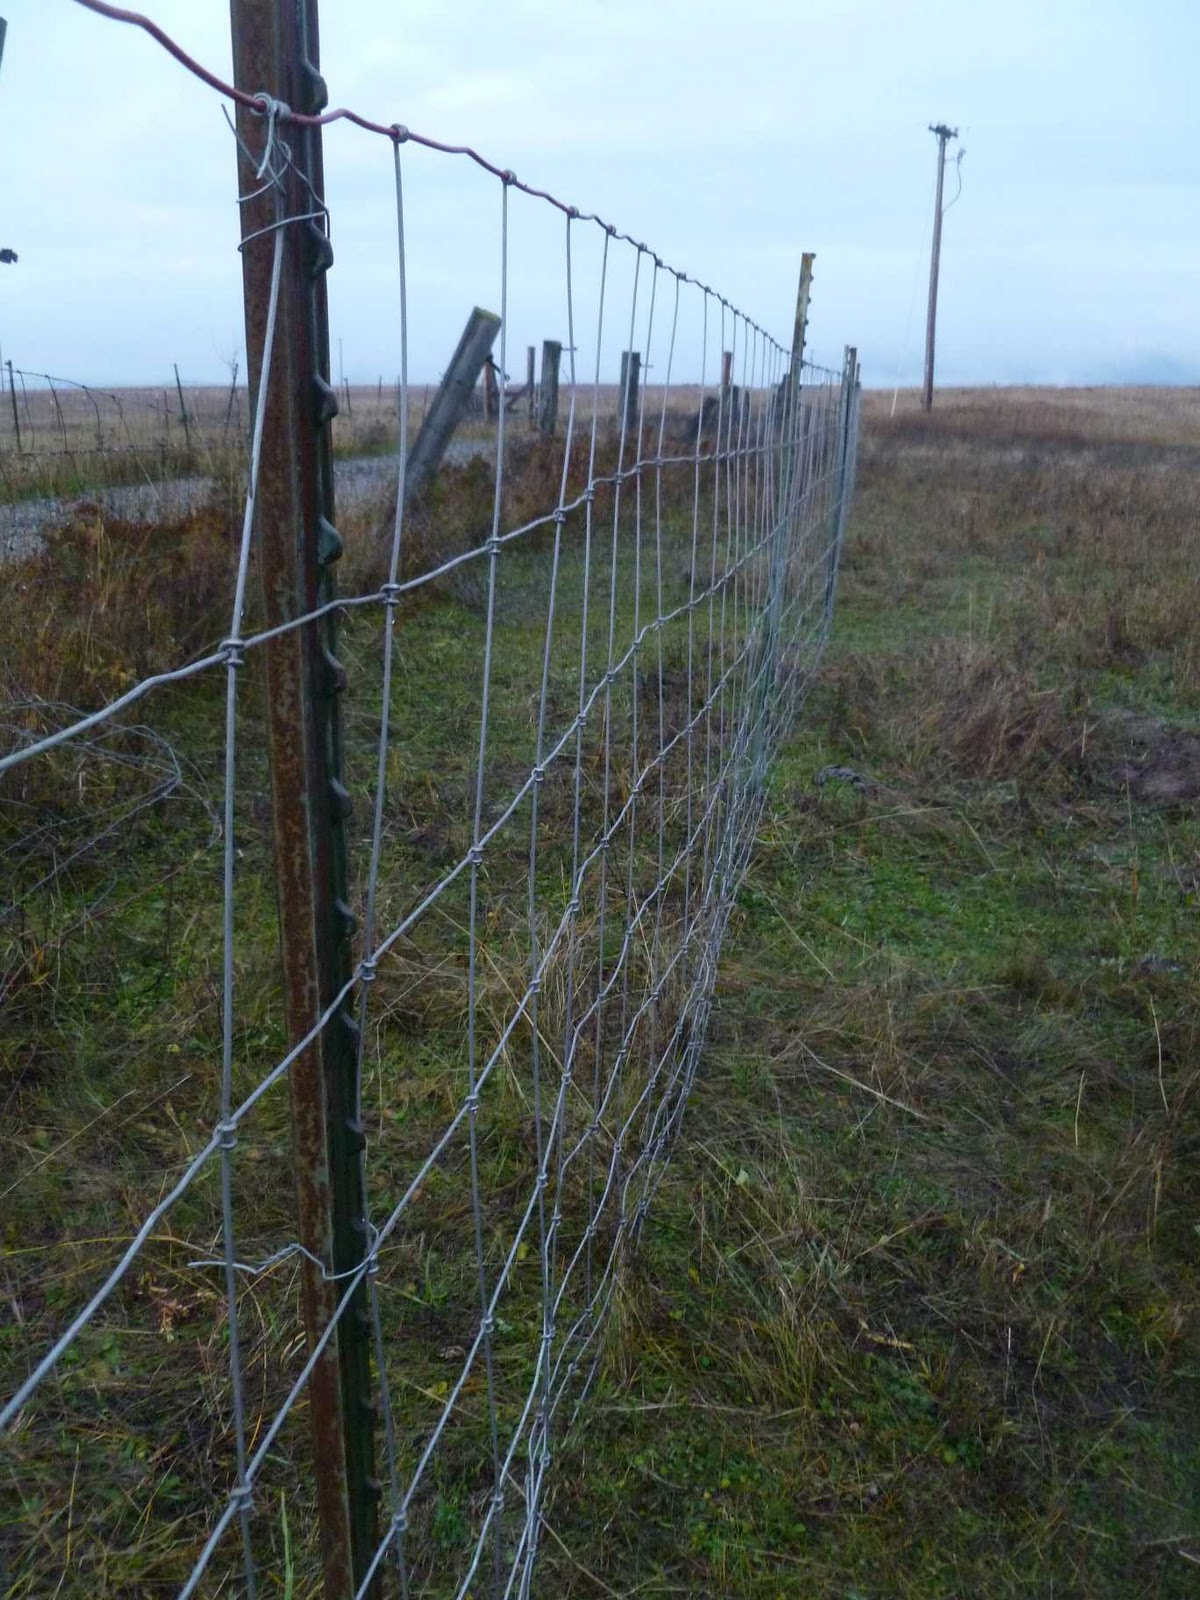 Rural Revolution: Fixing the #$%&*@ fences